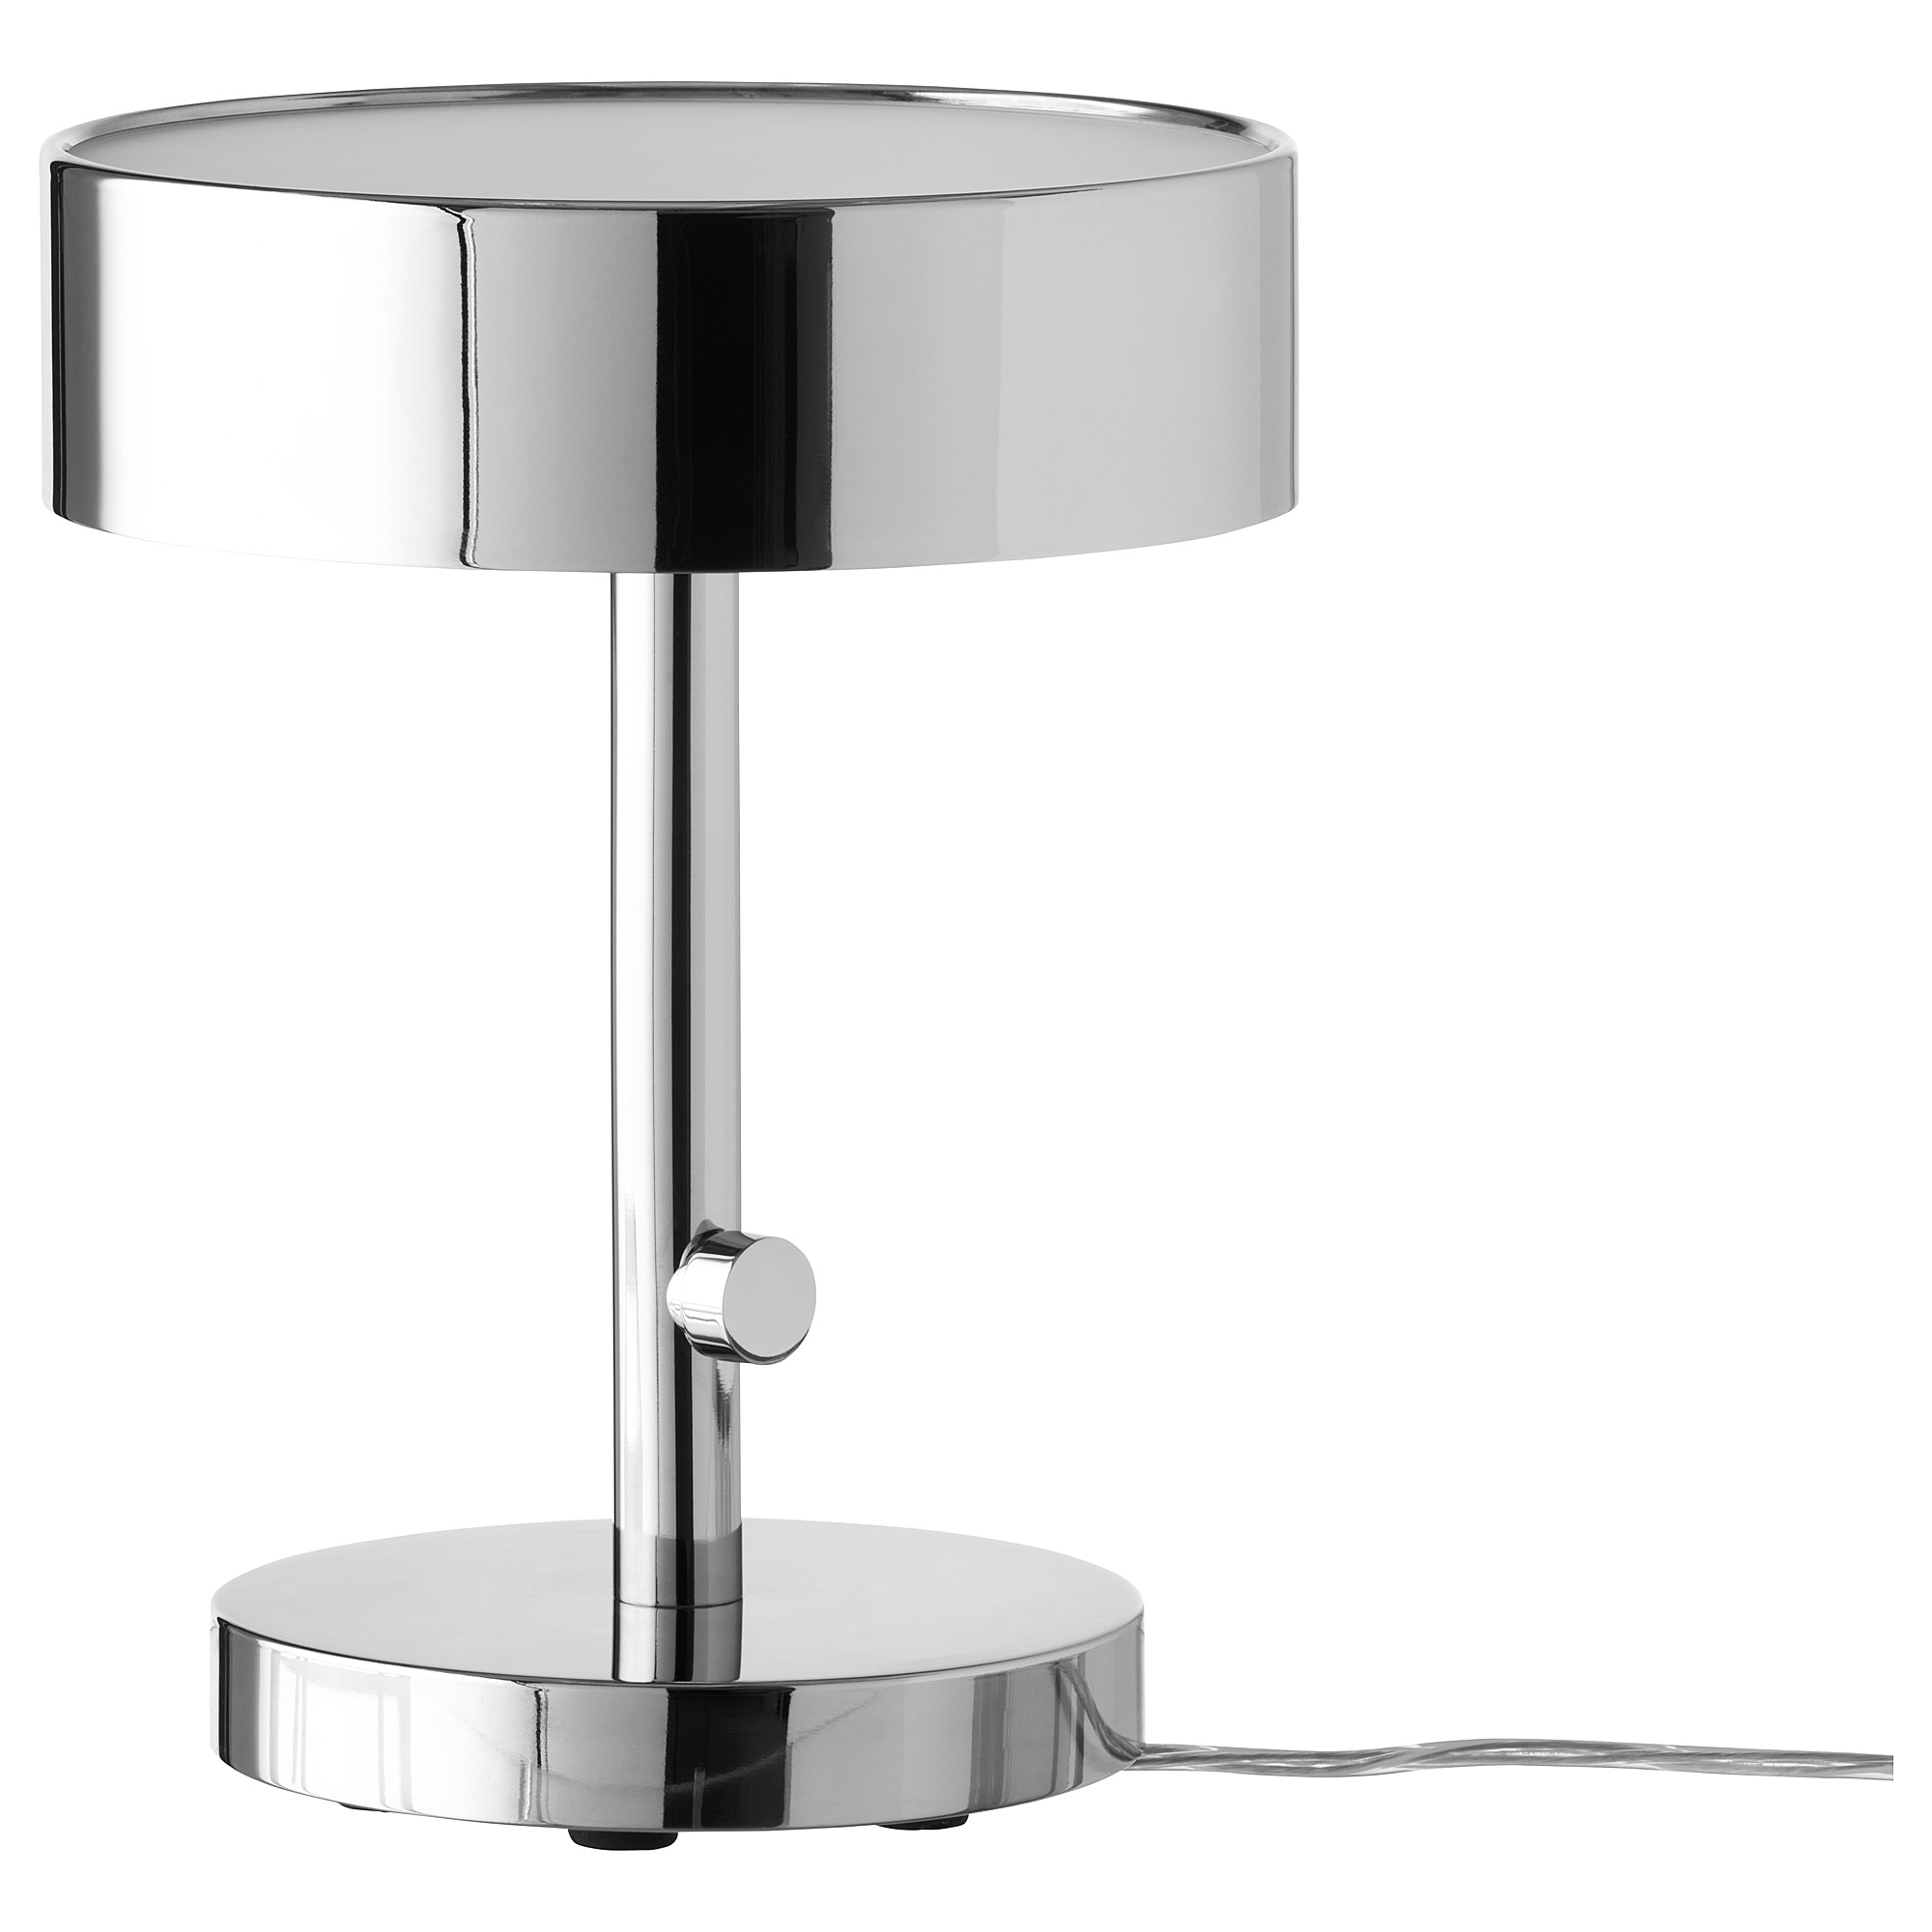 Delicieux STOCKHOLM 2017 Table Lamp With LED Bulb   IKEA